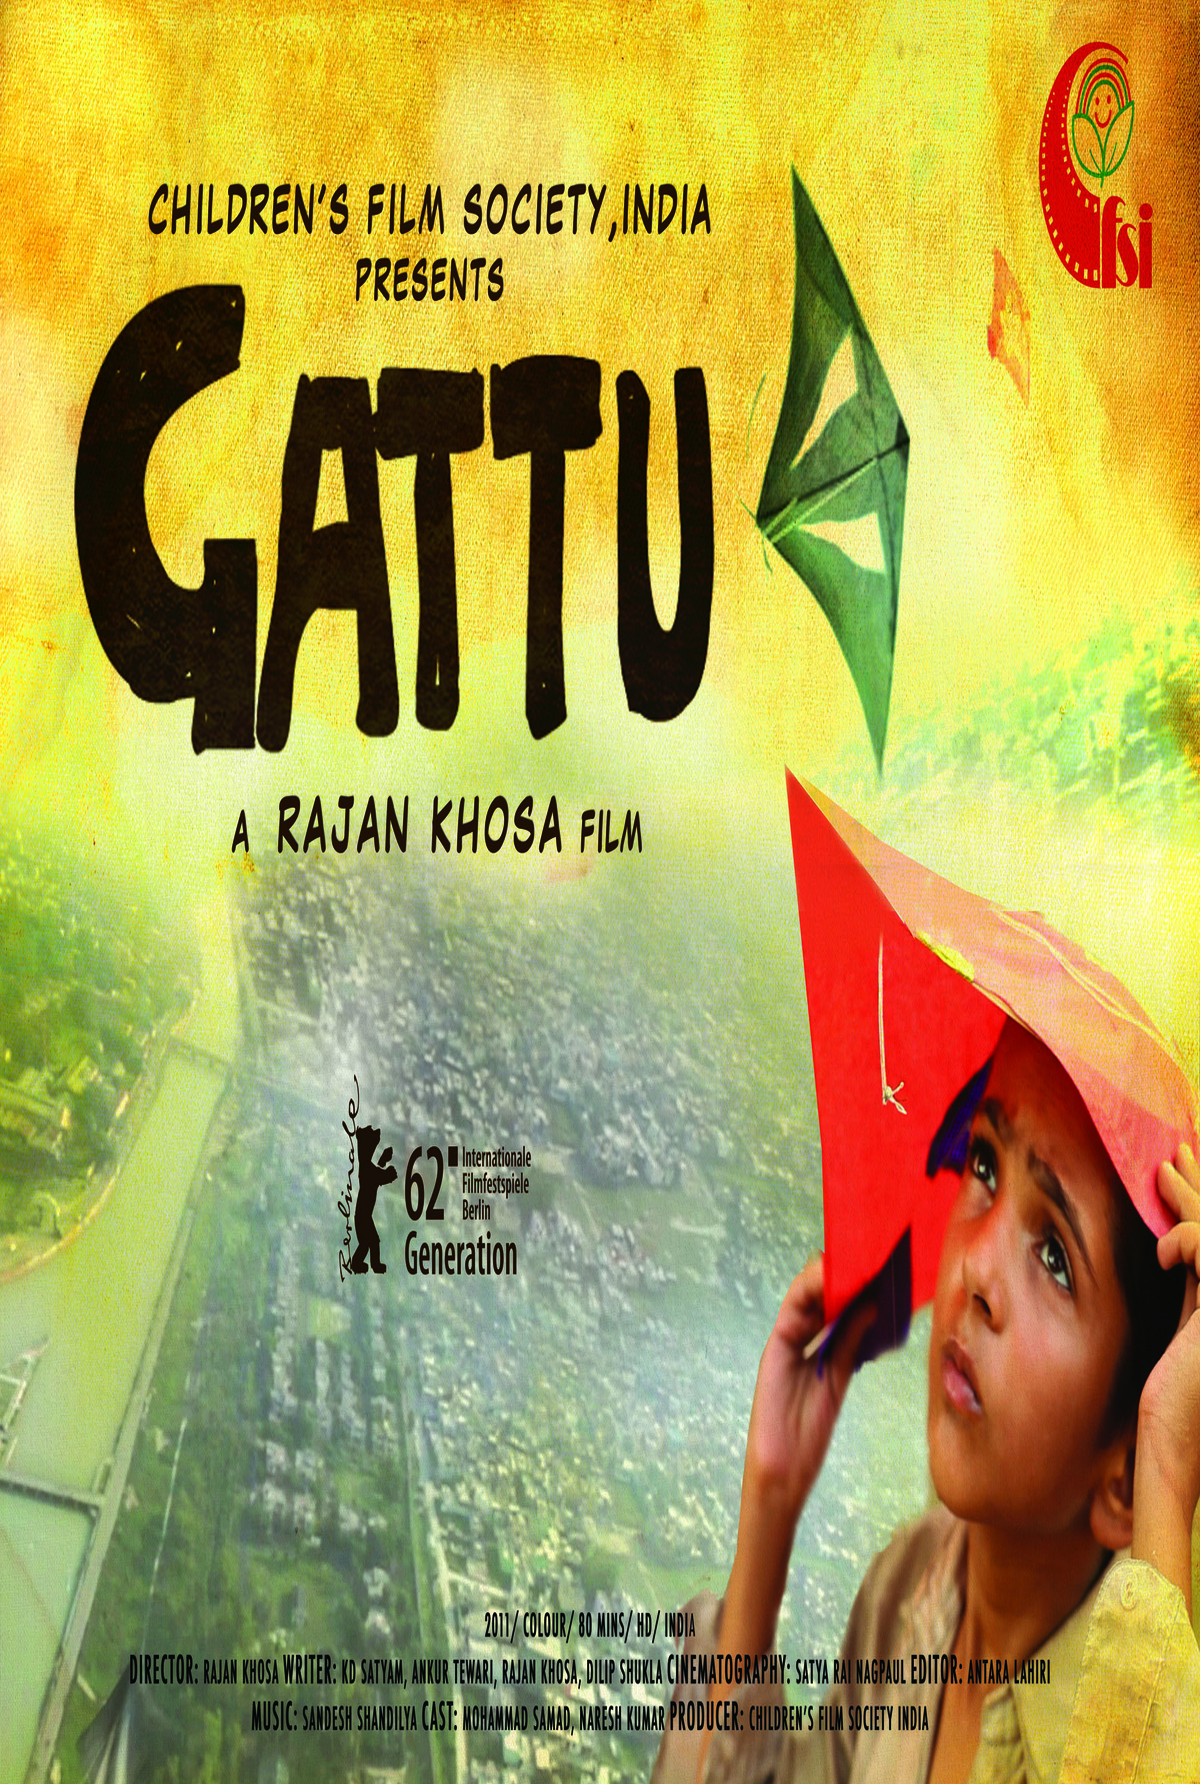 Gattu - Movie Poster #1 (Original)